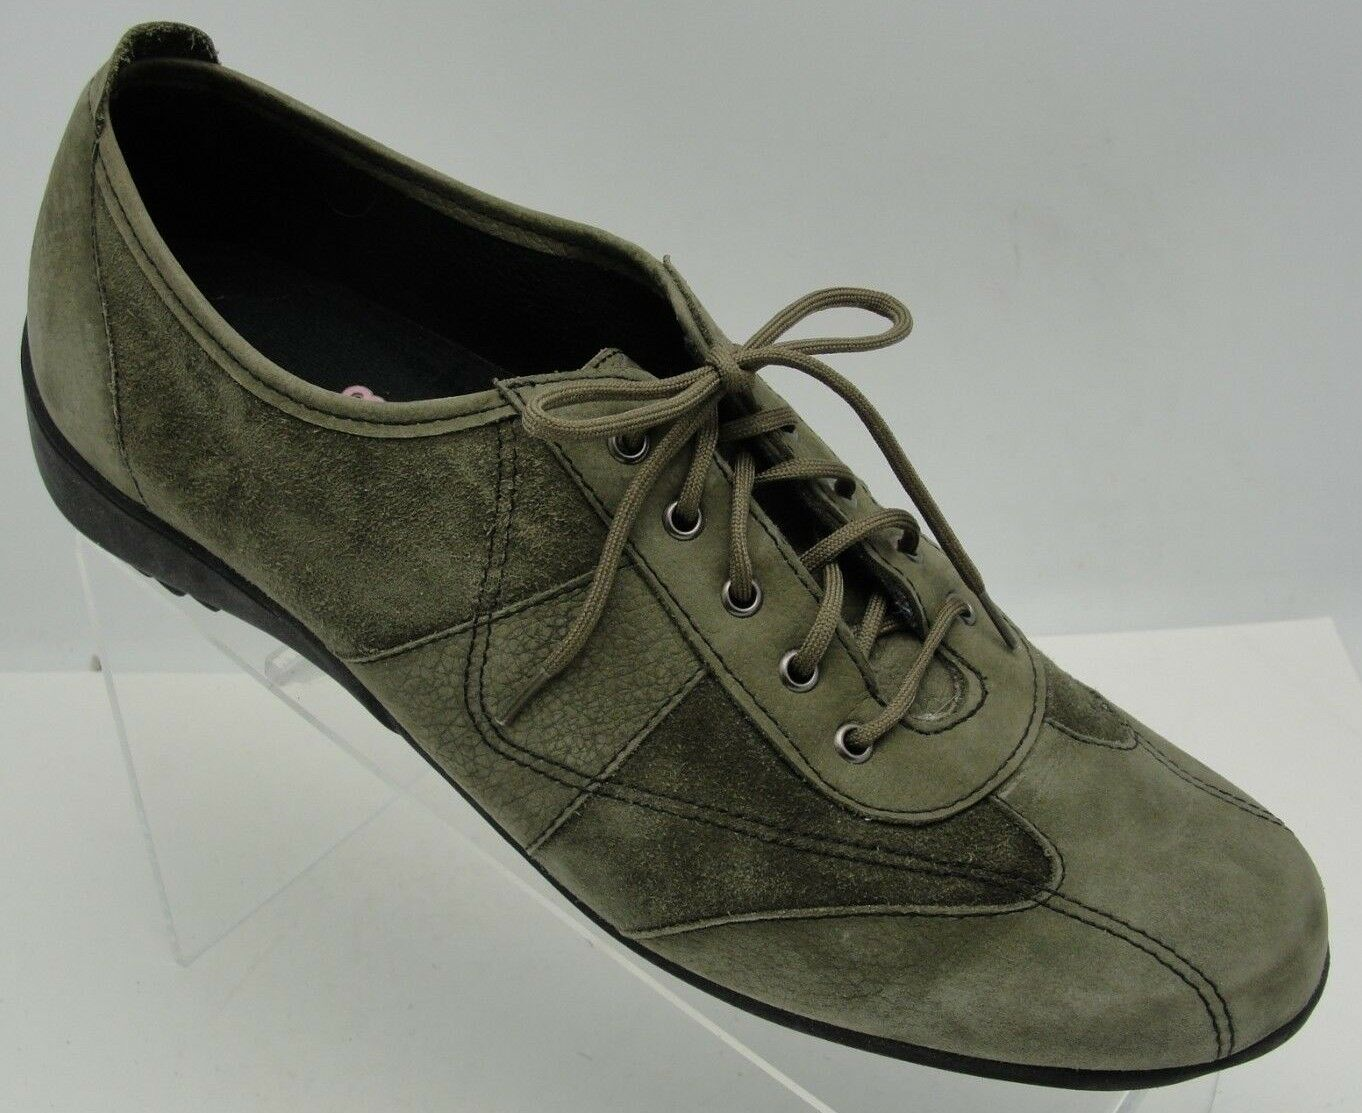 Clarks Bendables mujer 8.5M verde Suede Oxfords Comfort zapatos zapatos zapatos Leather Slip On  online barato